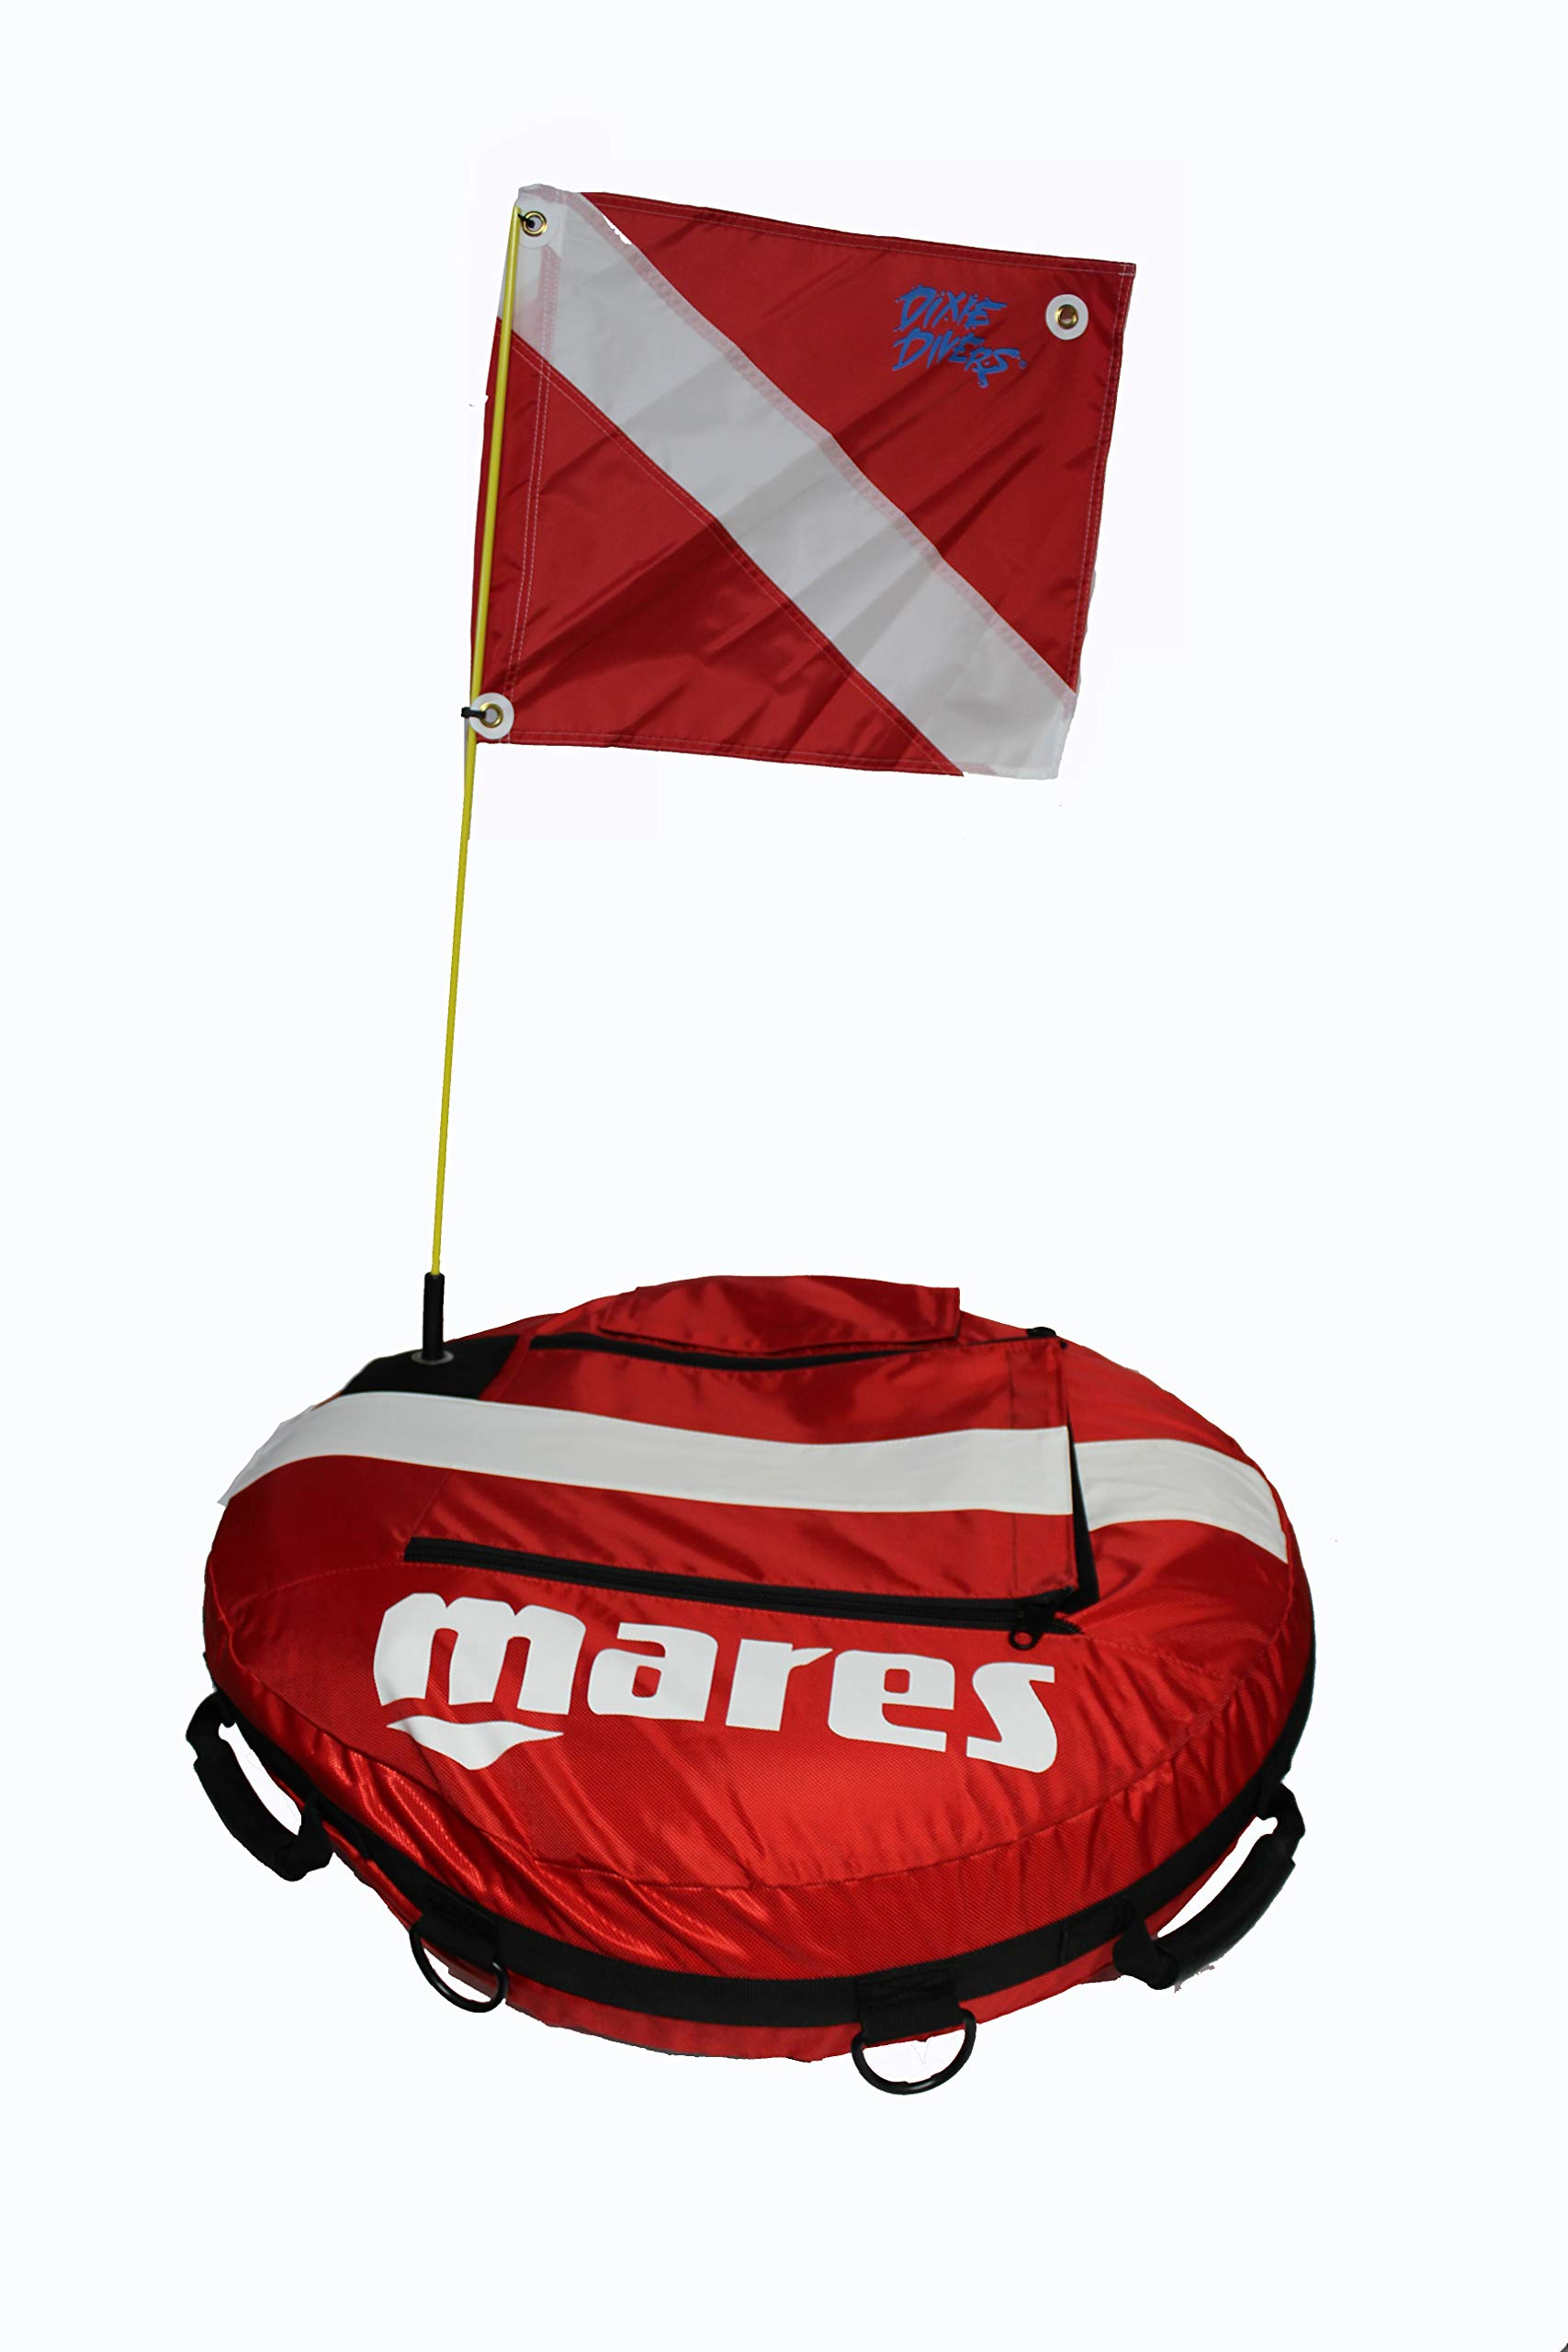 Mares Training Float Buoy with DXDIVER Legal Diving Flag Safety Marker Freediving Instruction Scuba Snorkeling